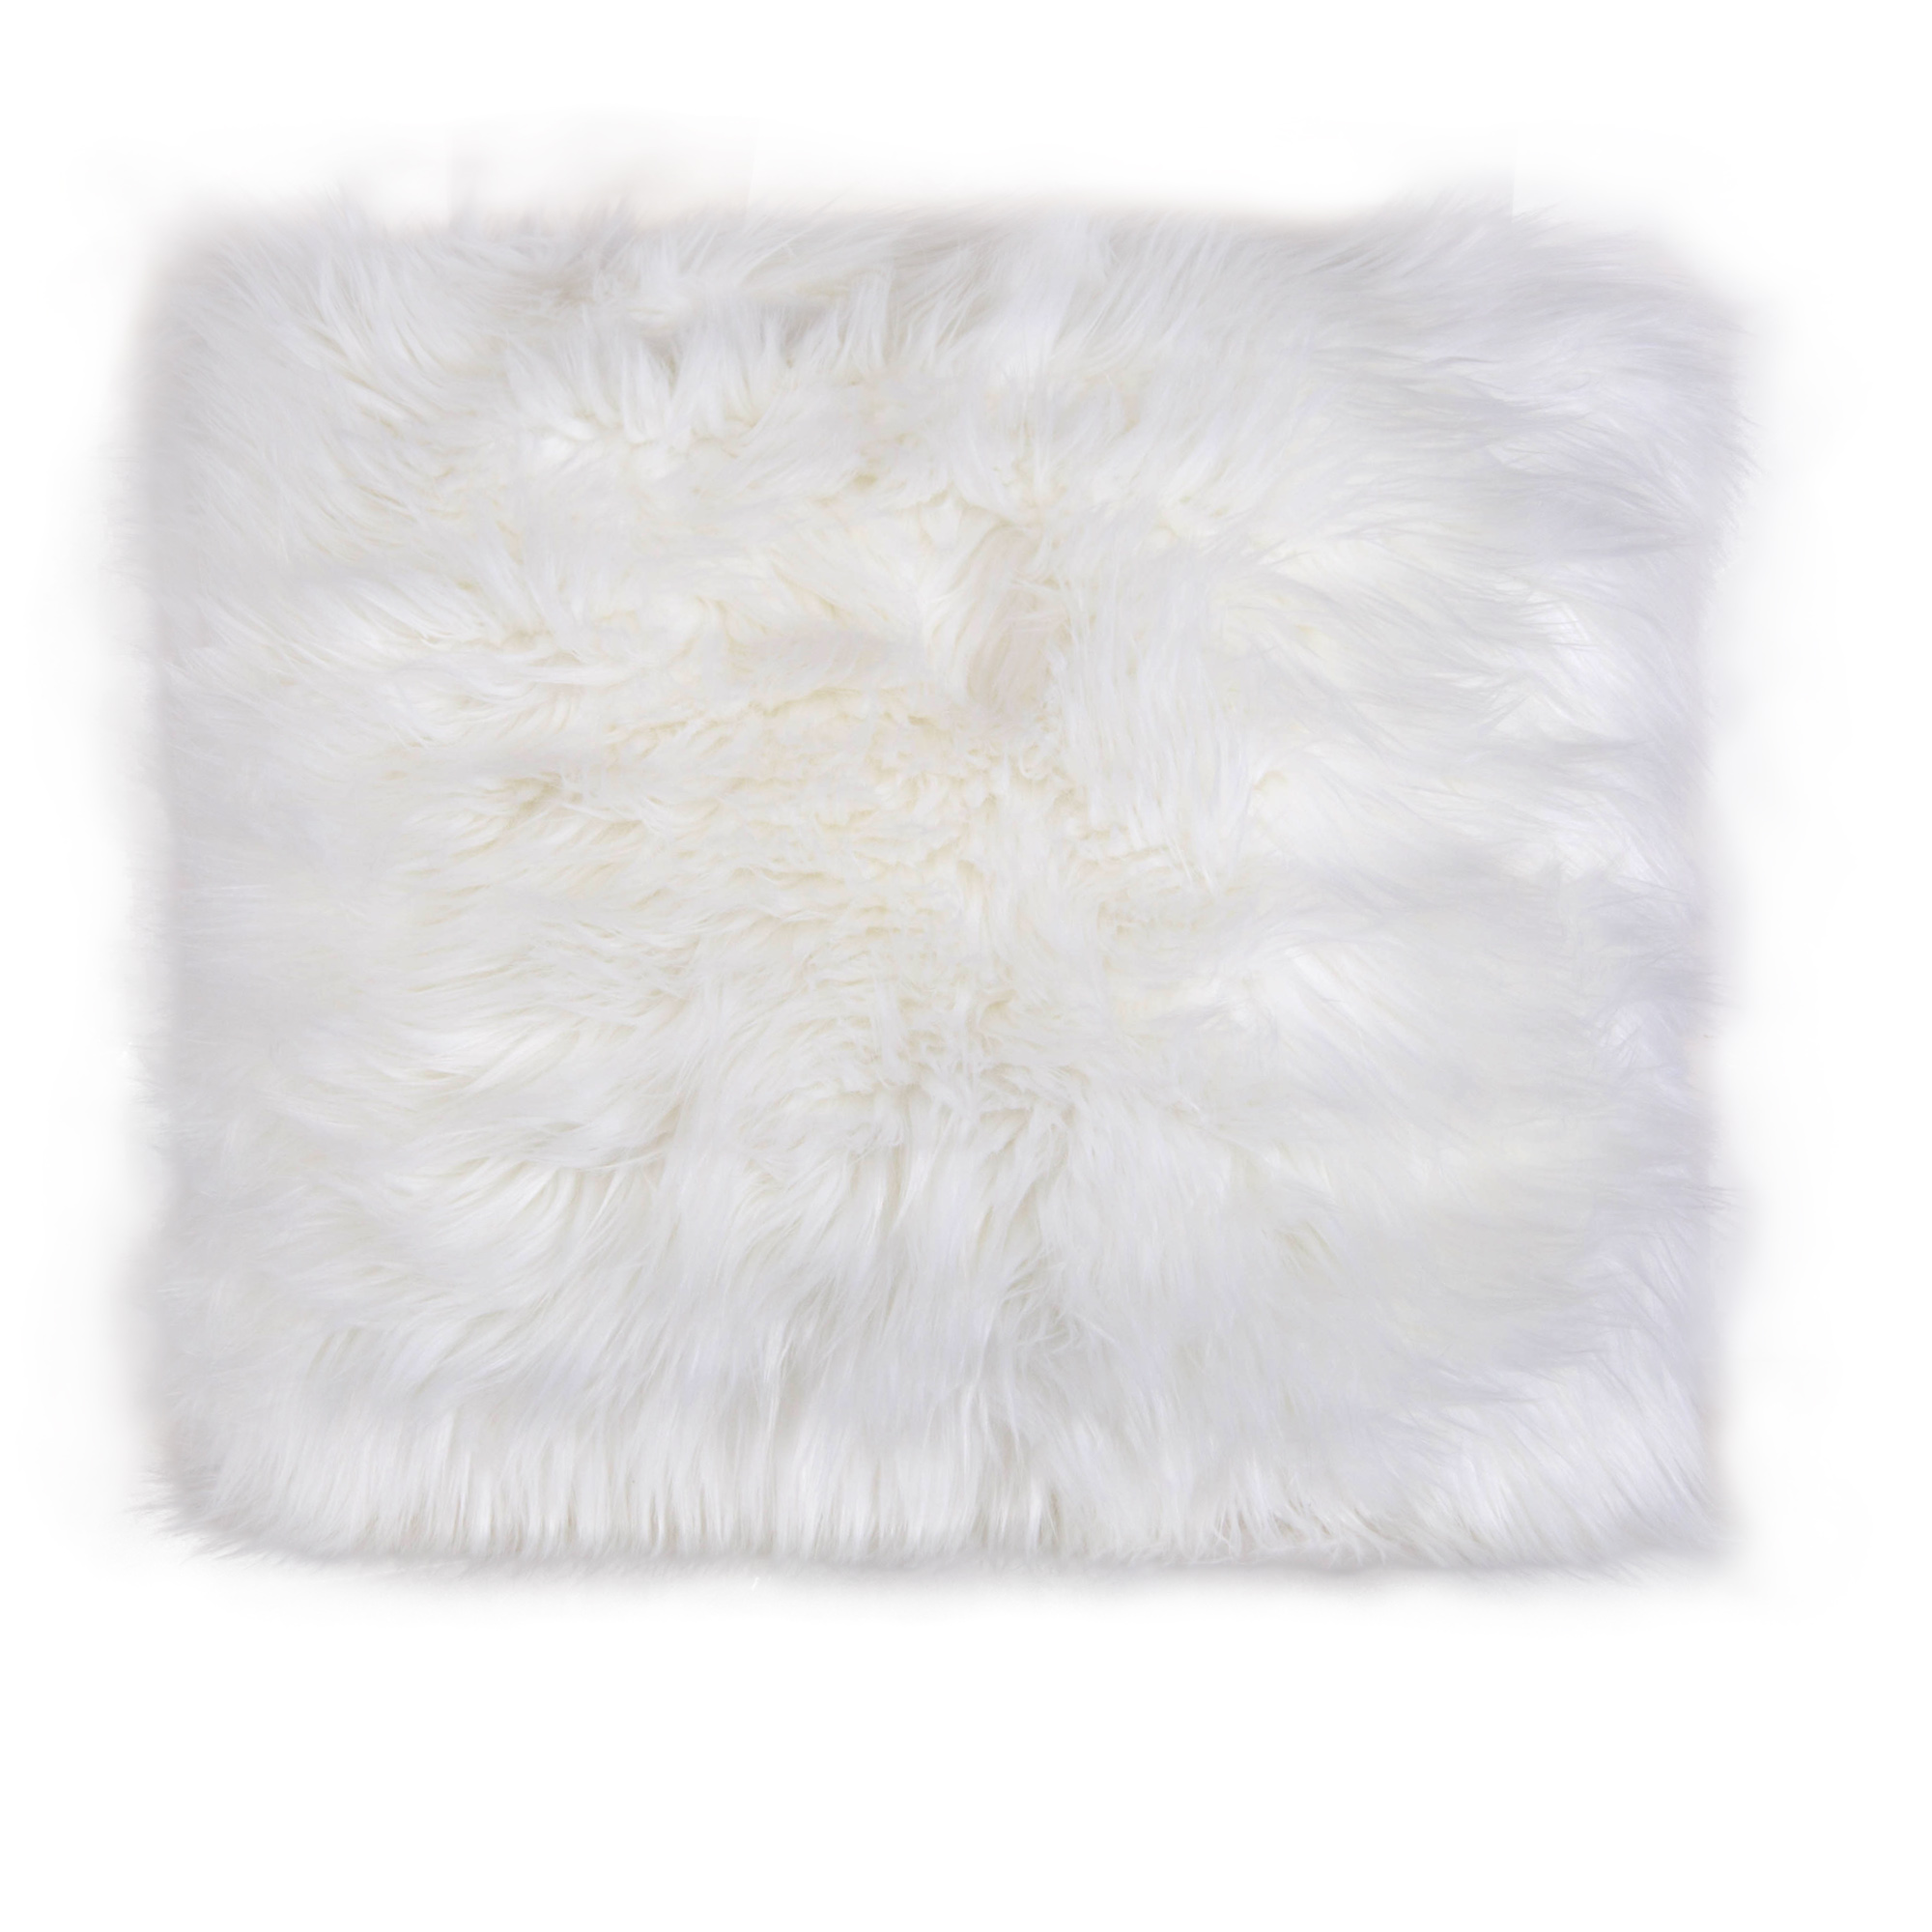 at a luxury gray of fur an pin faux pillow your to irresistibly our lends space look